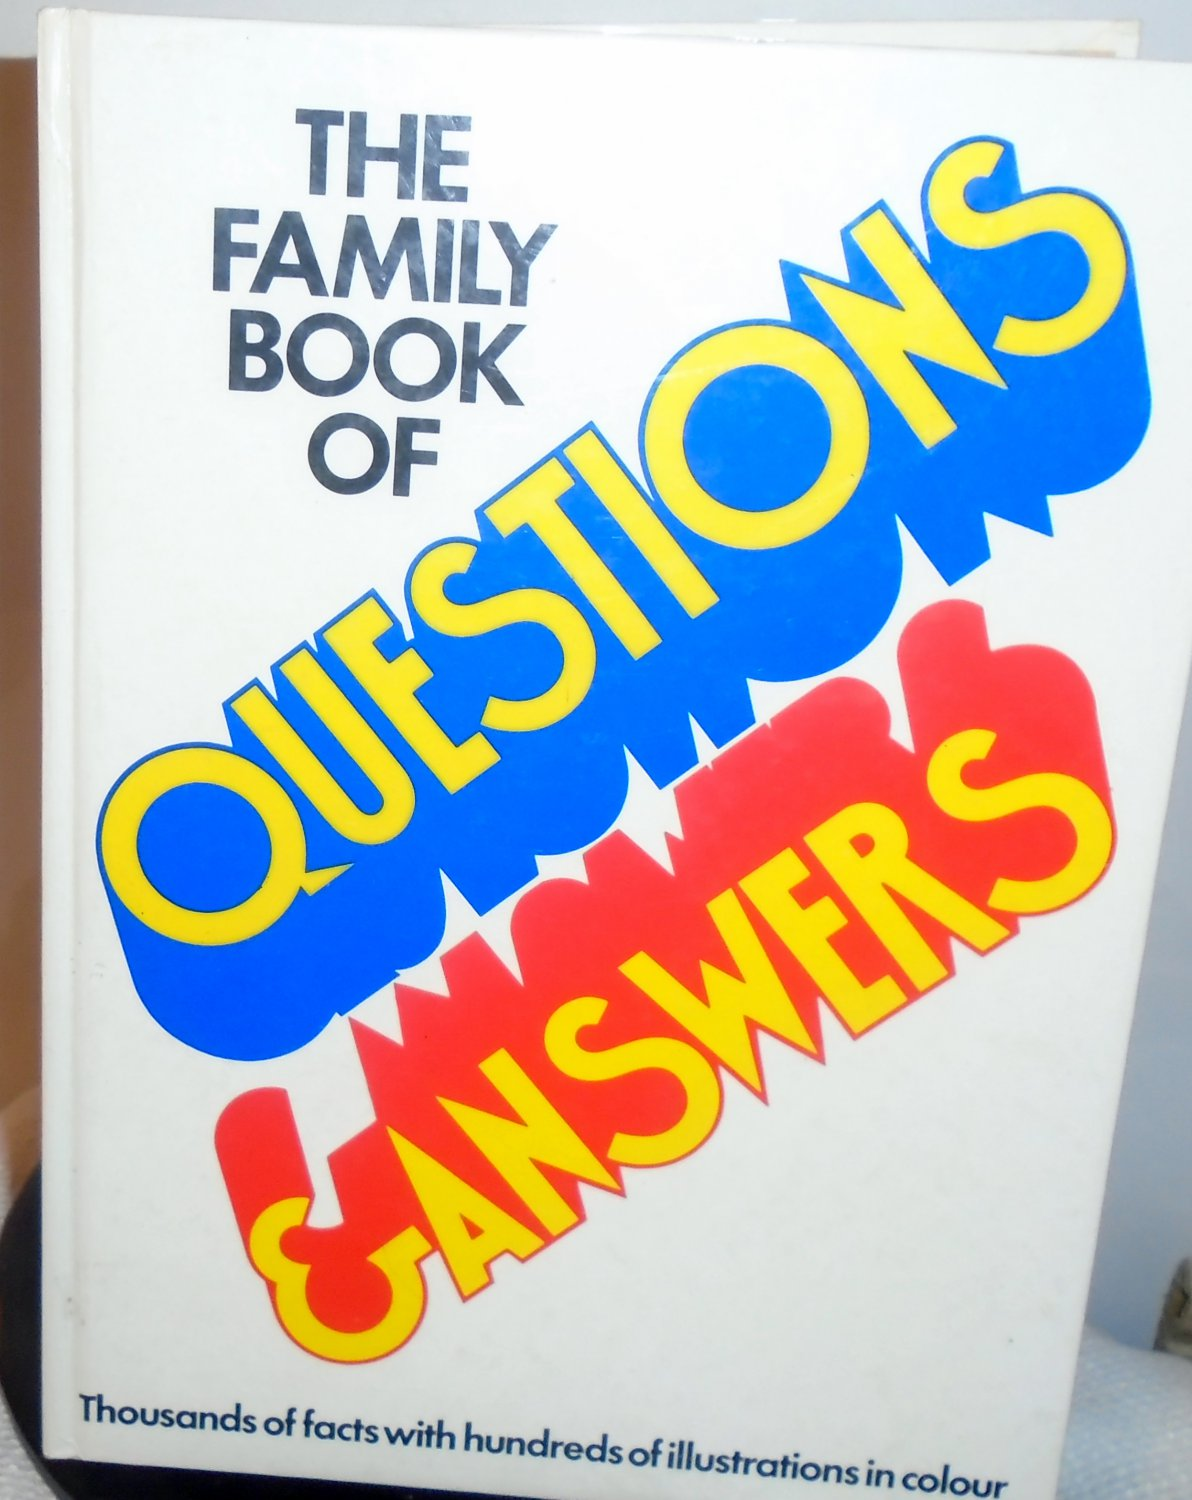 The Family Book of Questions and answers 1974 Lynx press